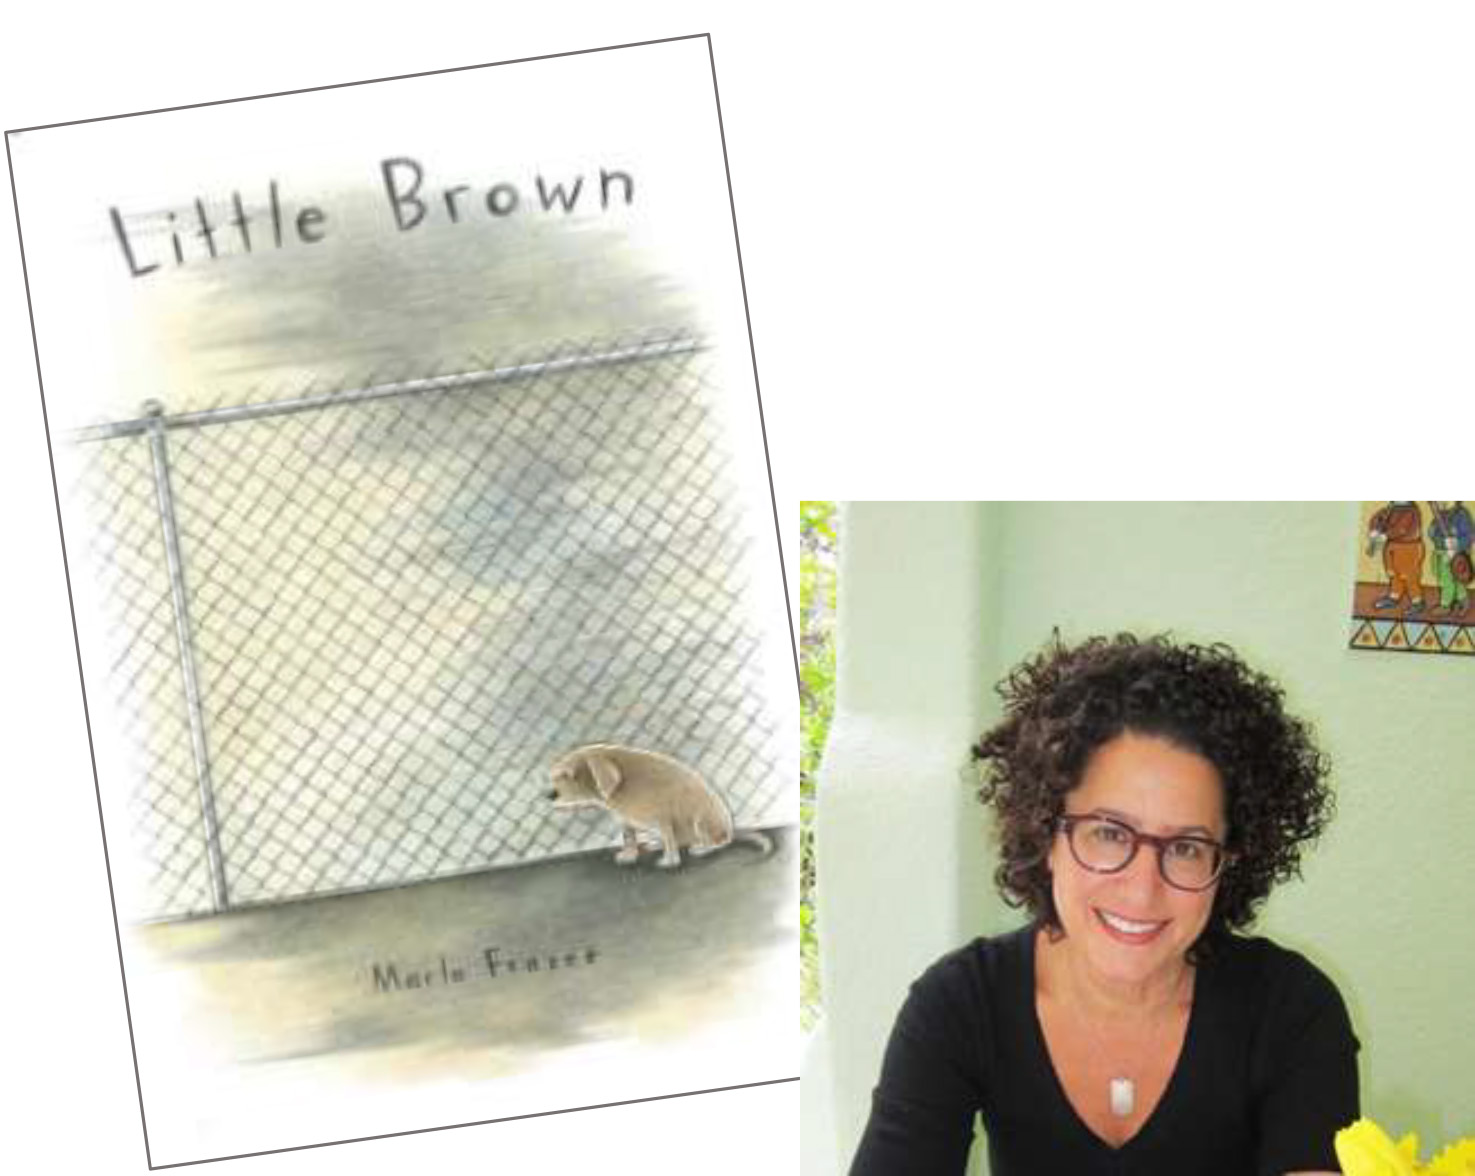 Marla Frazee and Little Brown book cover